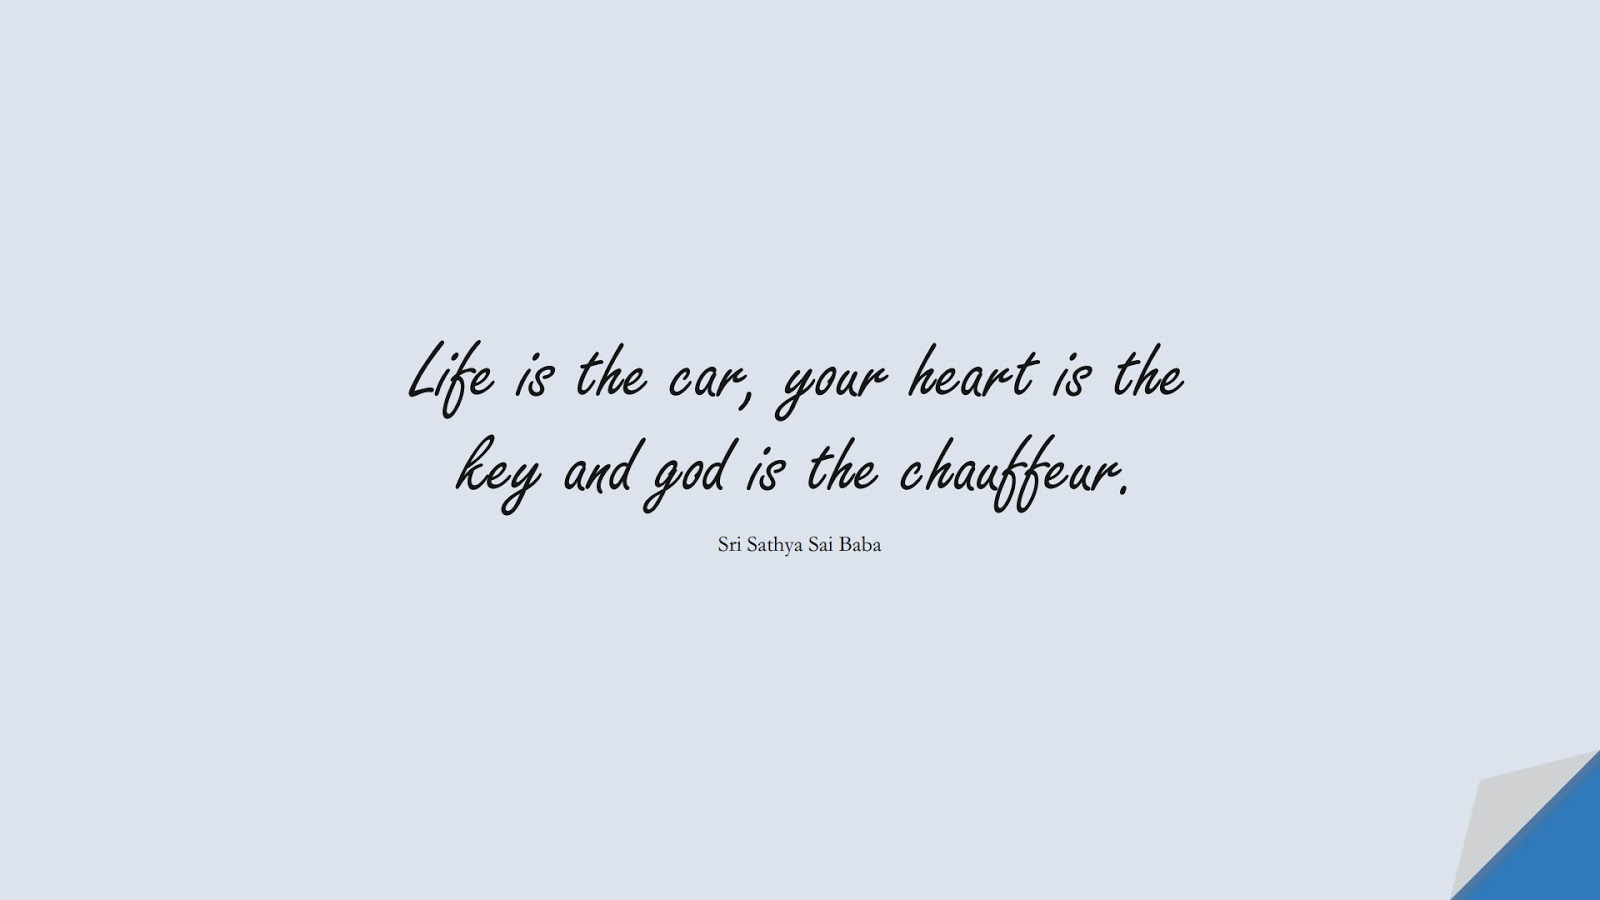 Life is the car, your heart is the key and god is the chauffeur. (Sri Sathya Sai Baba);  #ShortQuotes